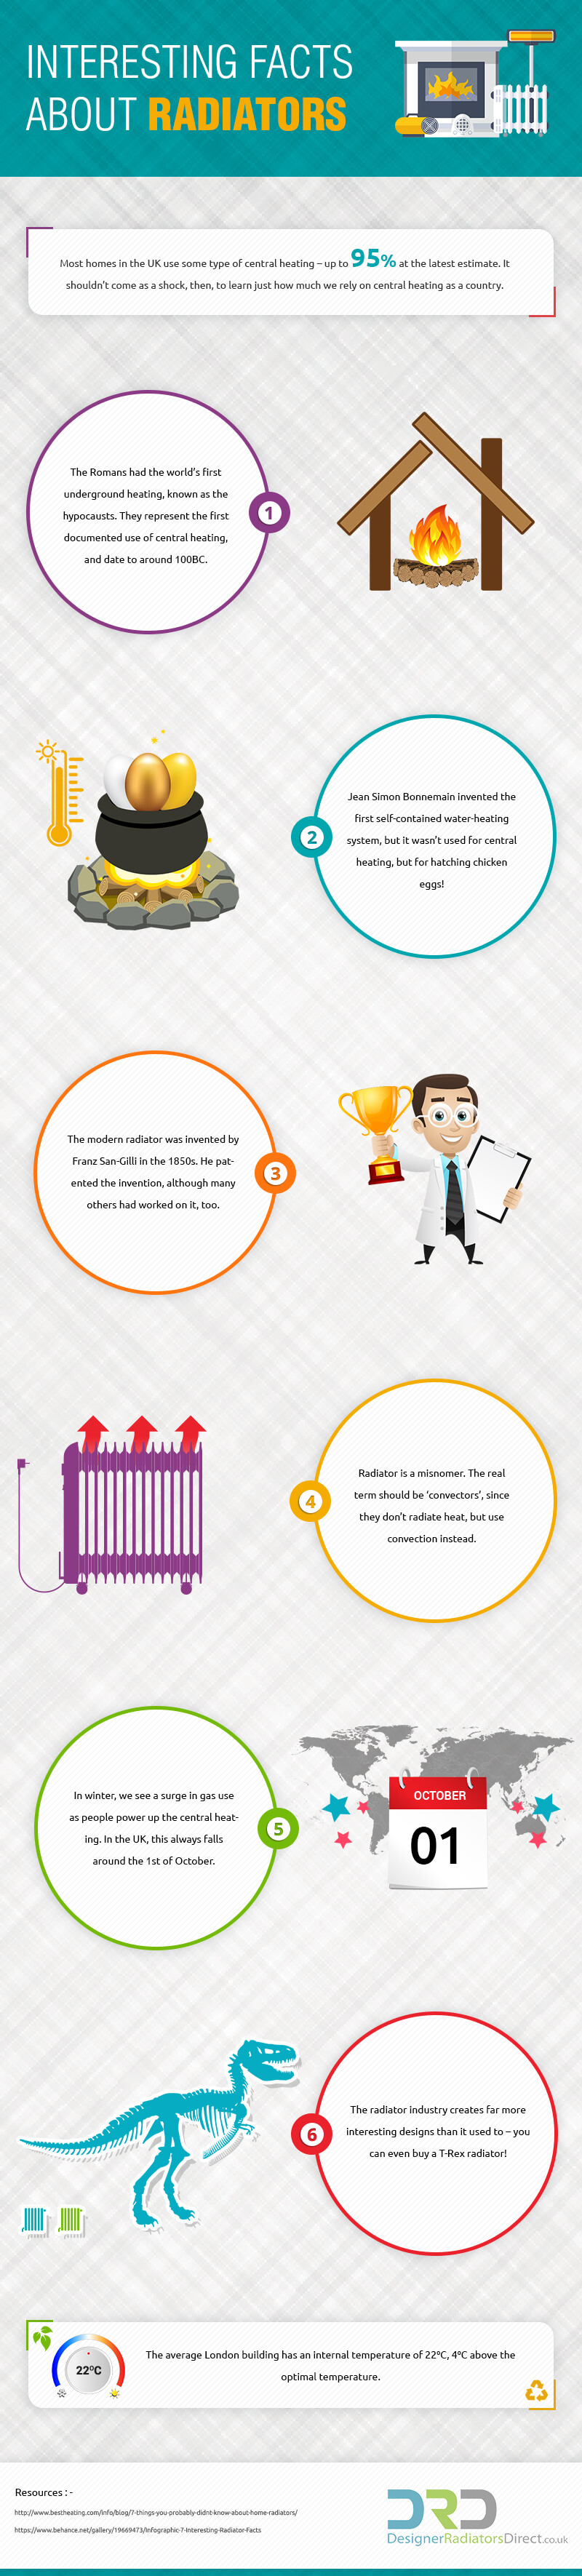 interesting-facts-about-radiators-infographic-plaza